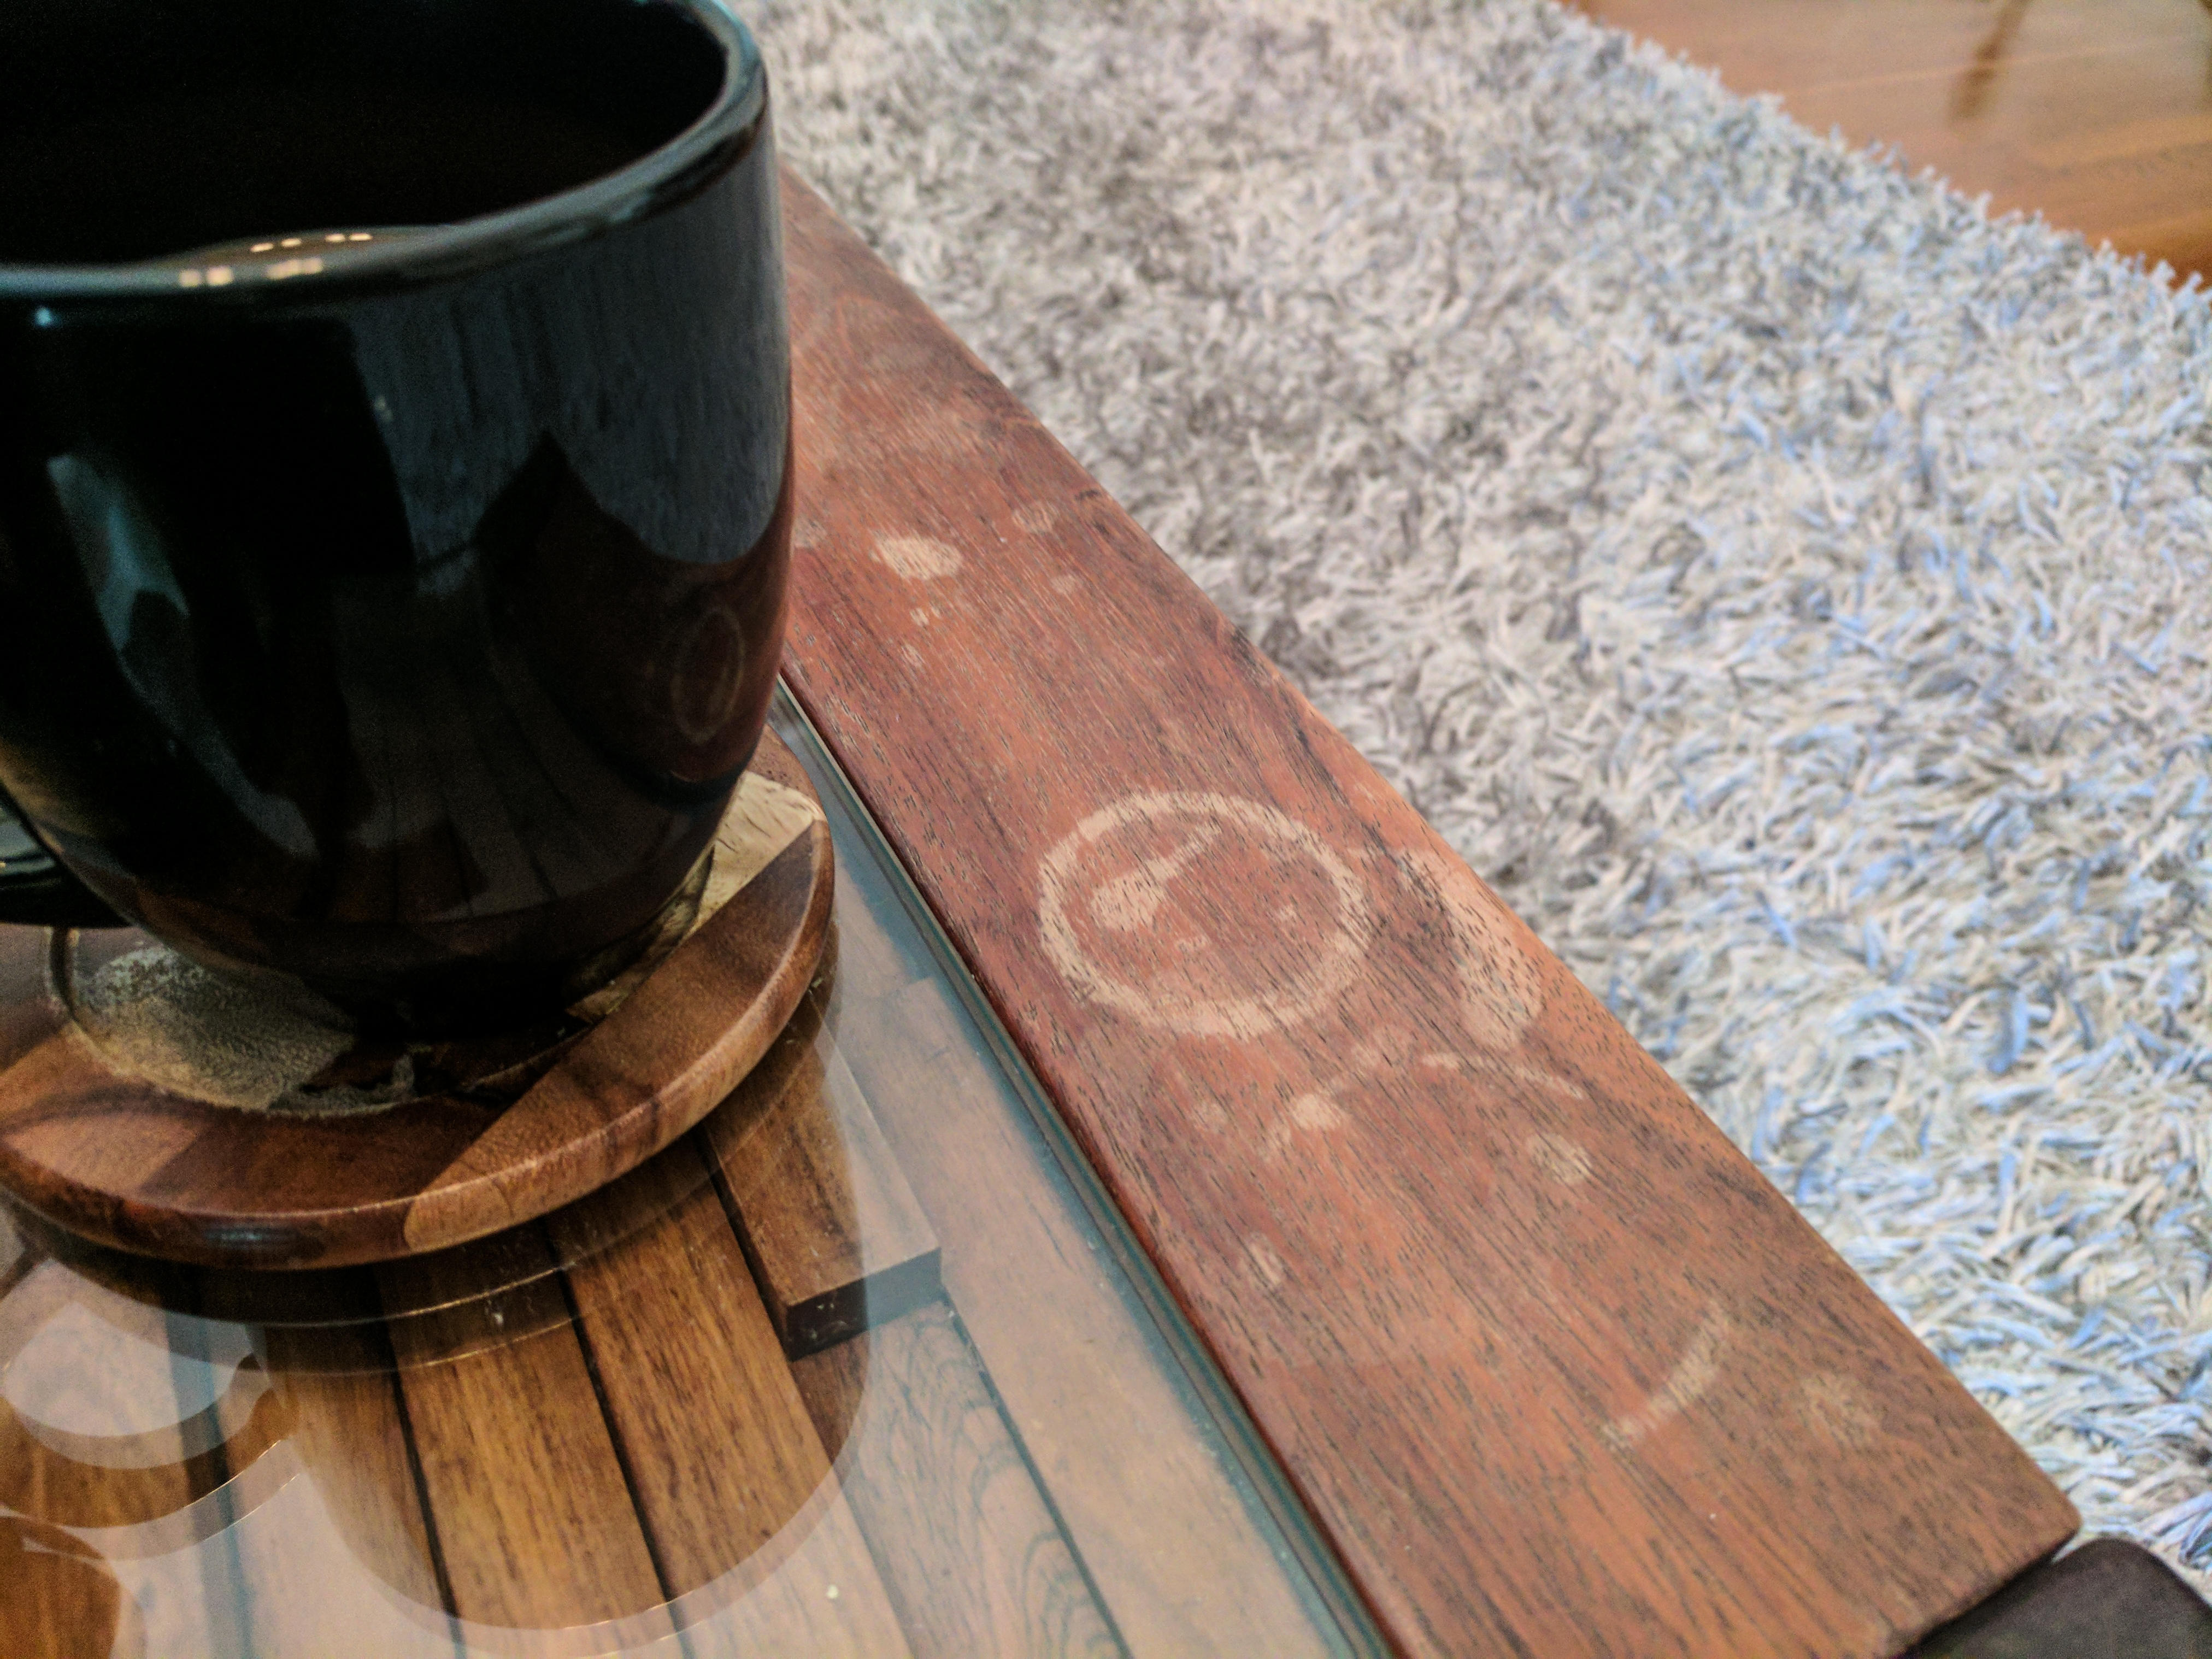 How To Remove Water Stains From Wood Furniture Cnet - How To Remove White Spots On Wood Tables